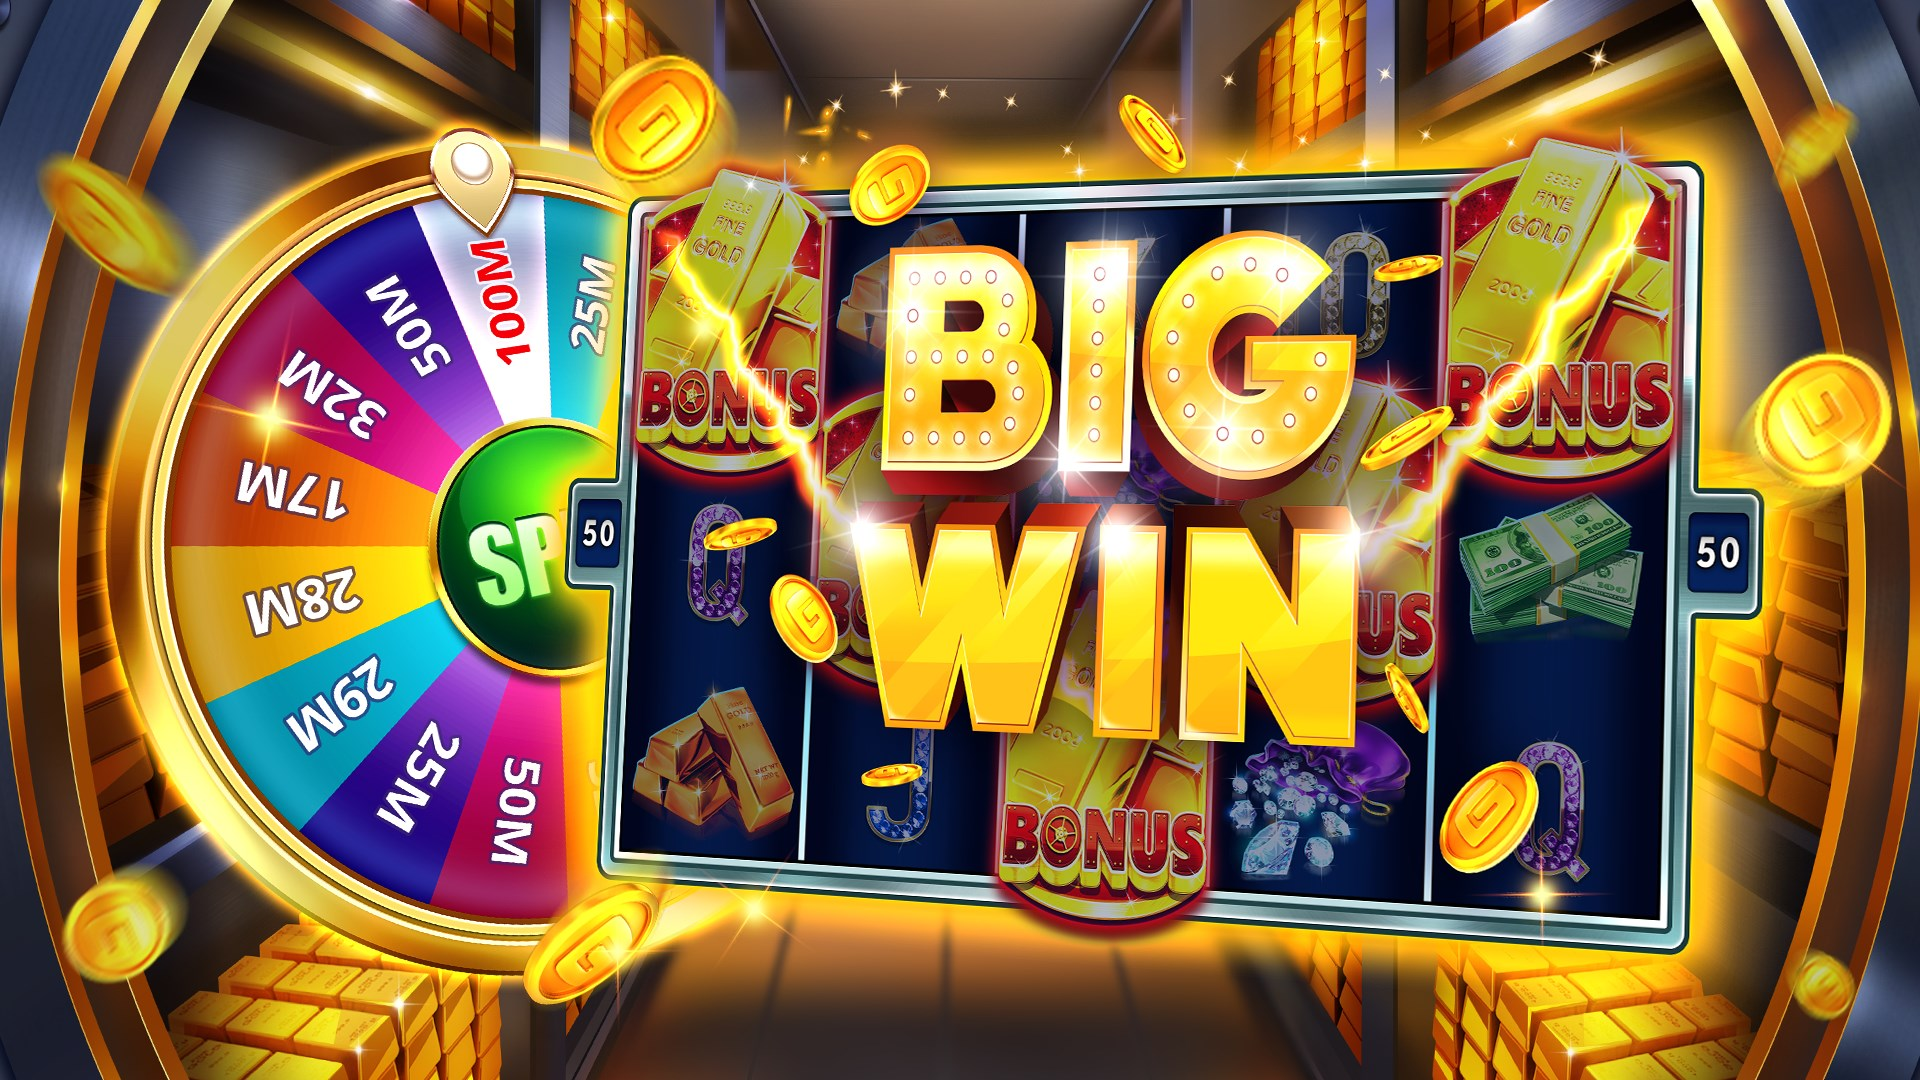 Spiele Suprising 7 - Video Slots Online